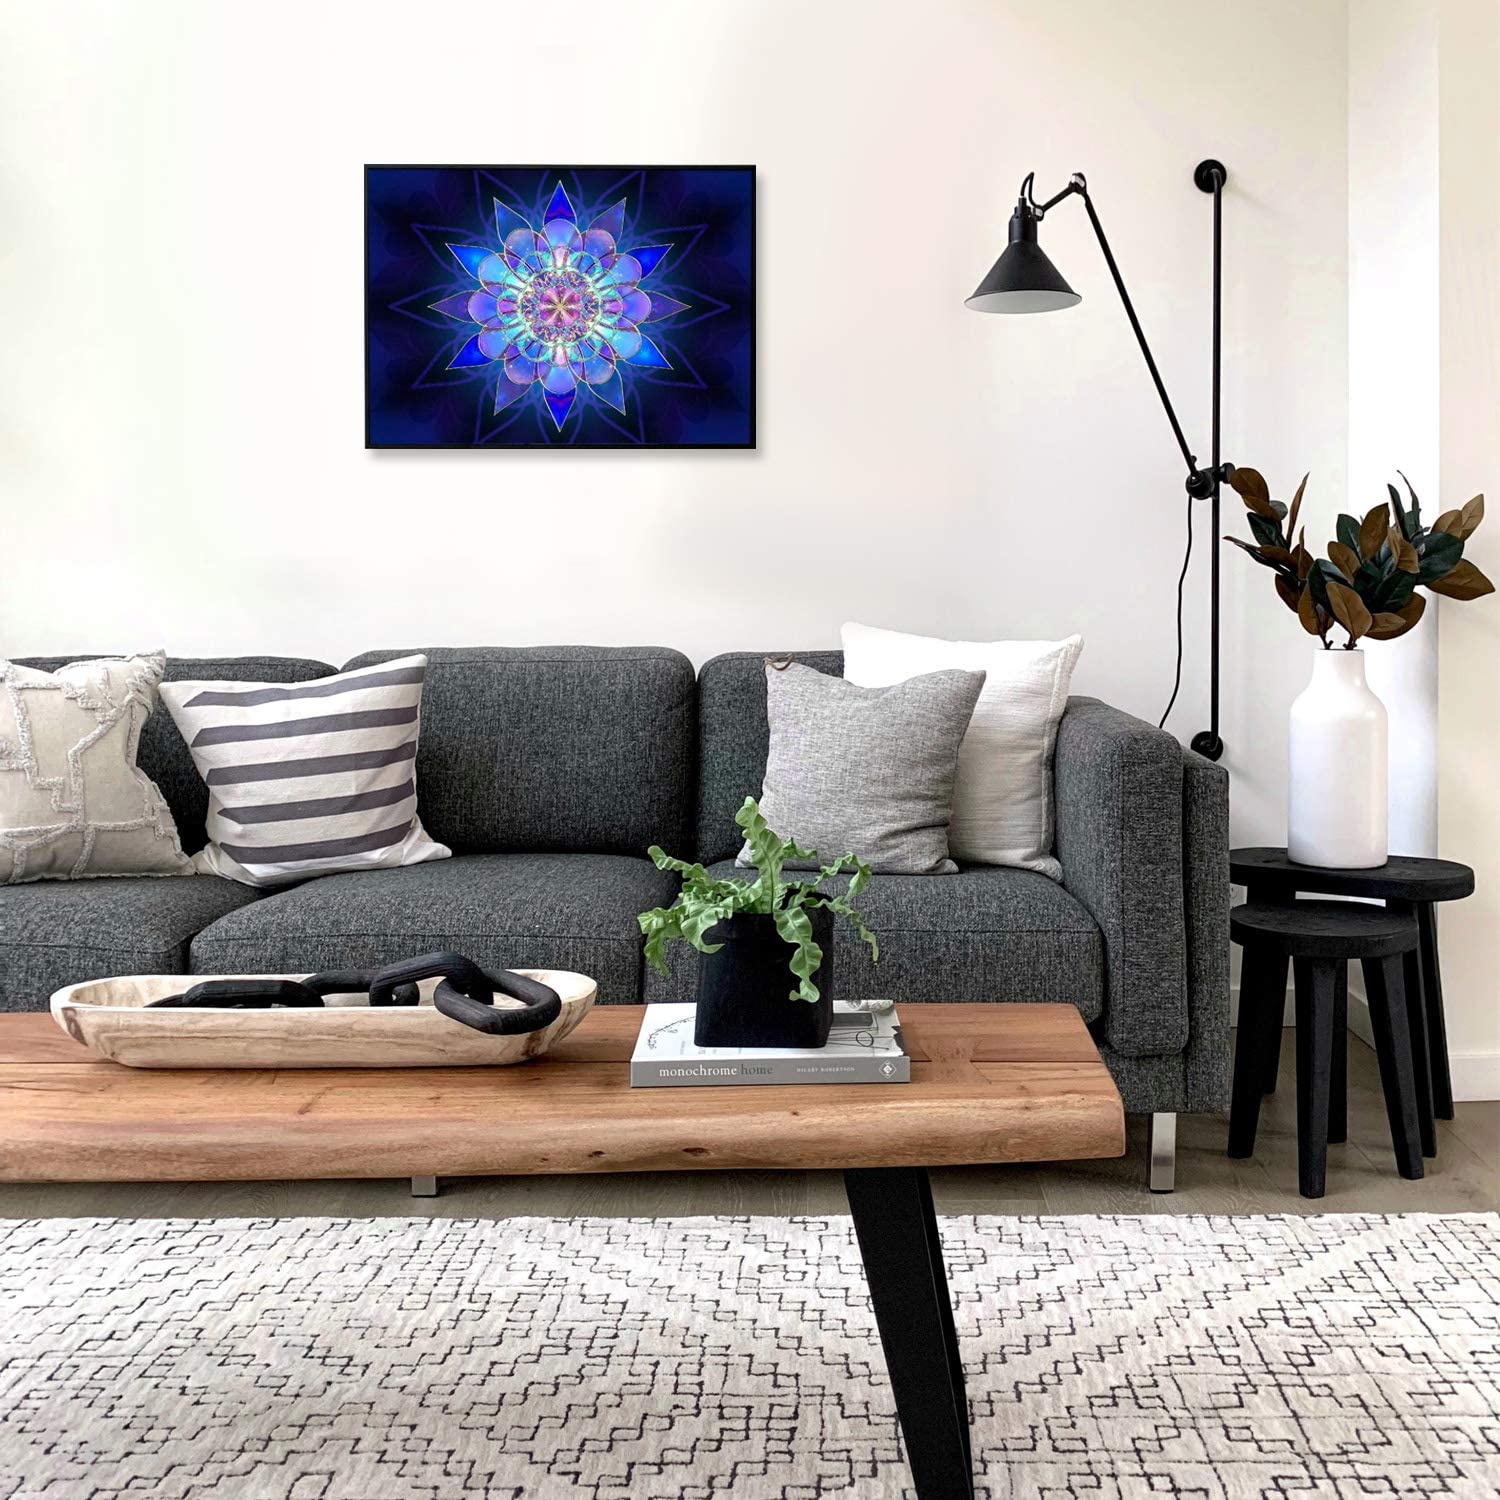 Ritoti DIY 5D Diamond Painting Kits for Adults Beginners Full Drill Crystal Rhinestone Pictures Arts Craft for Home Wall Decor 11.81x15.75 Inch,Purple Mandala